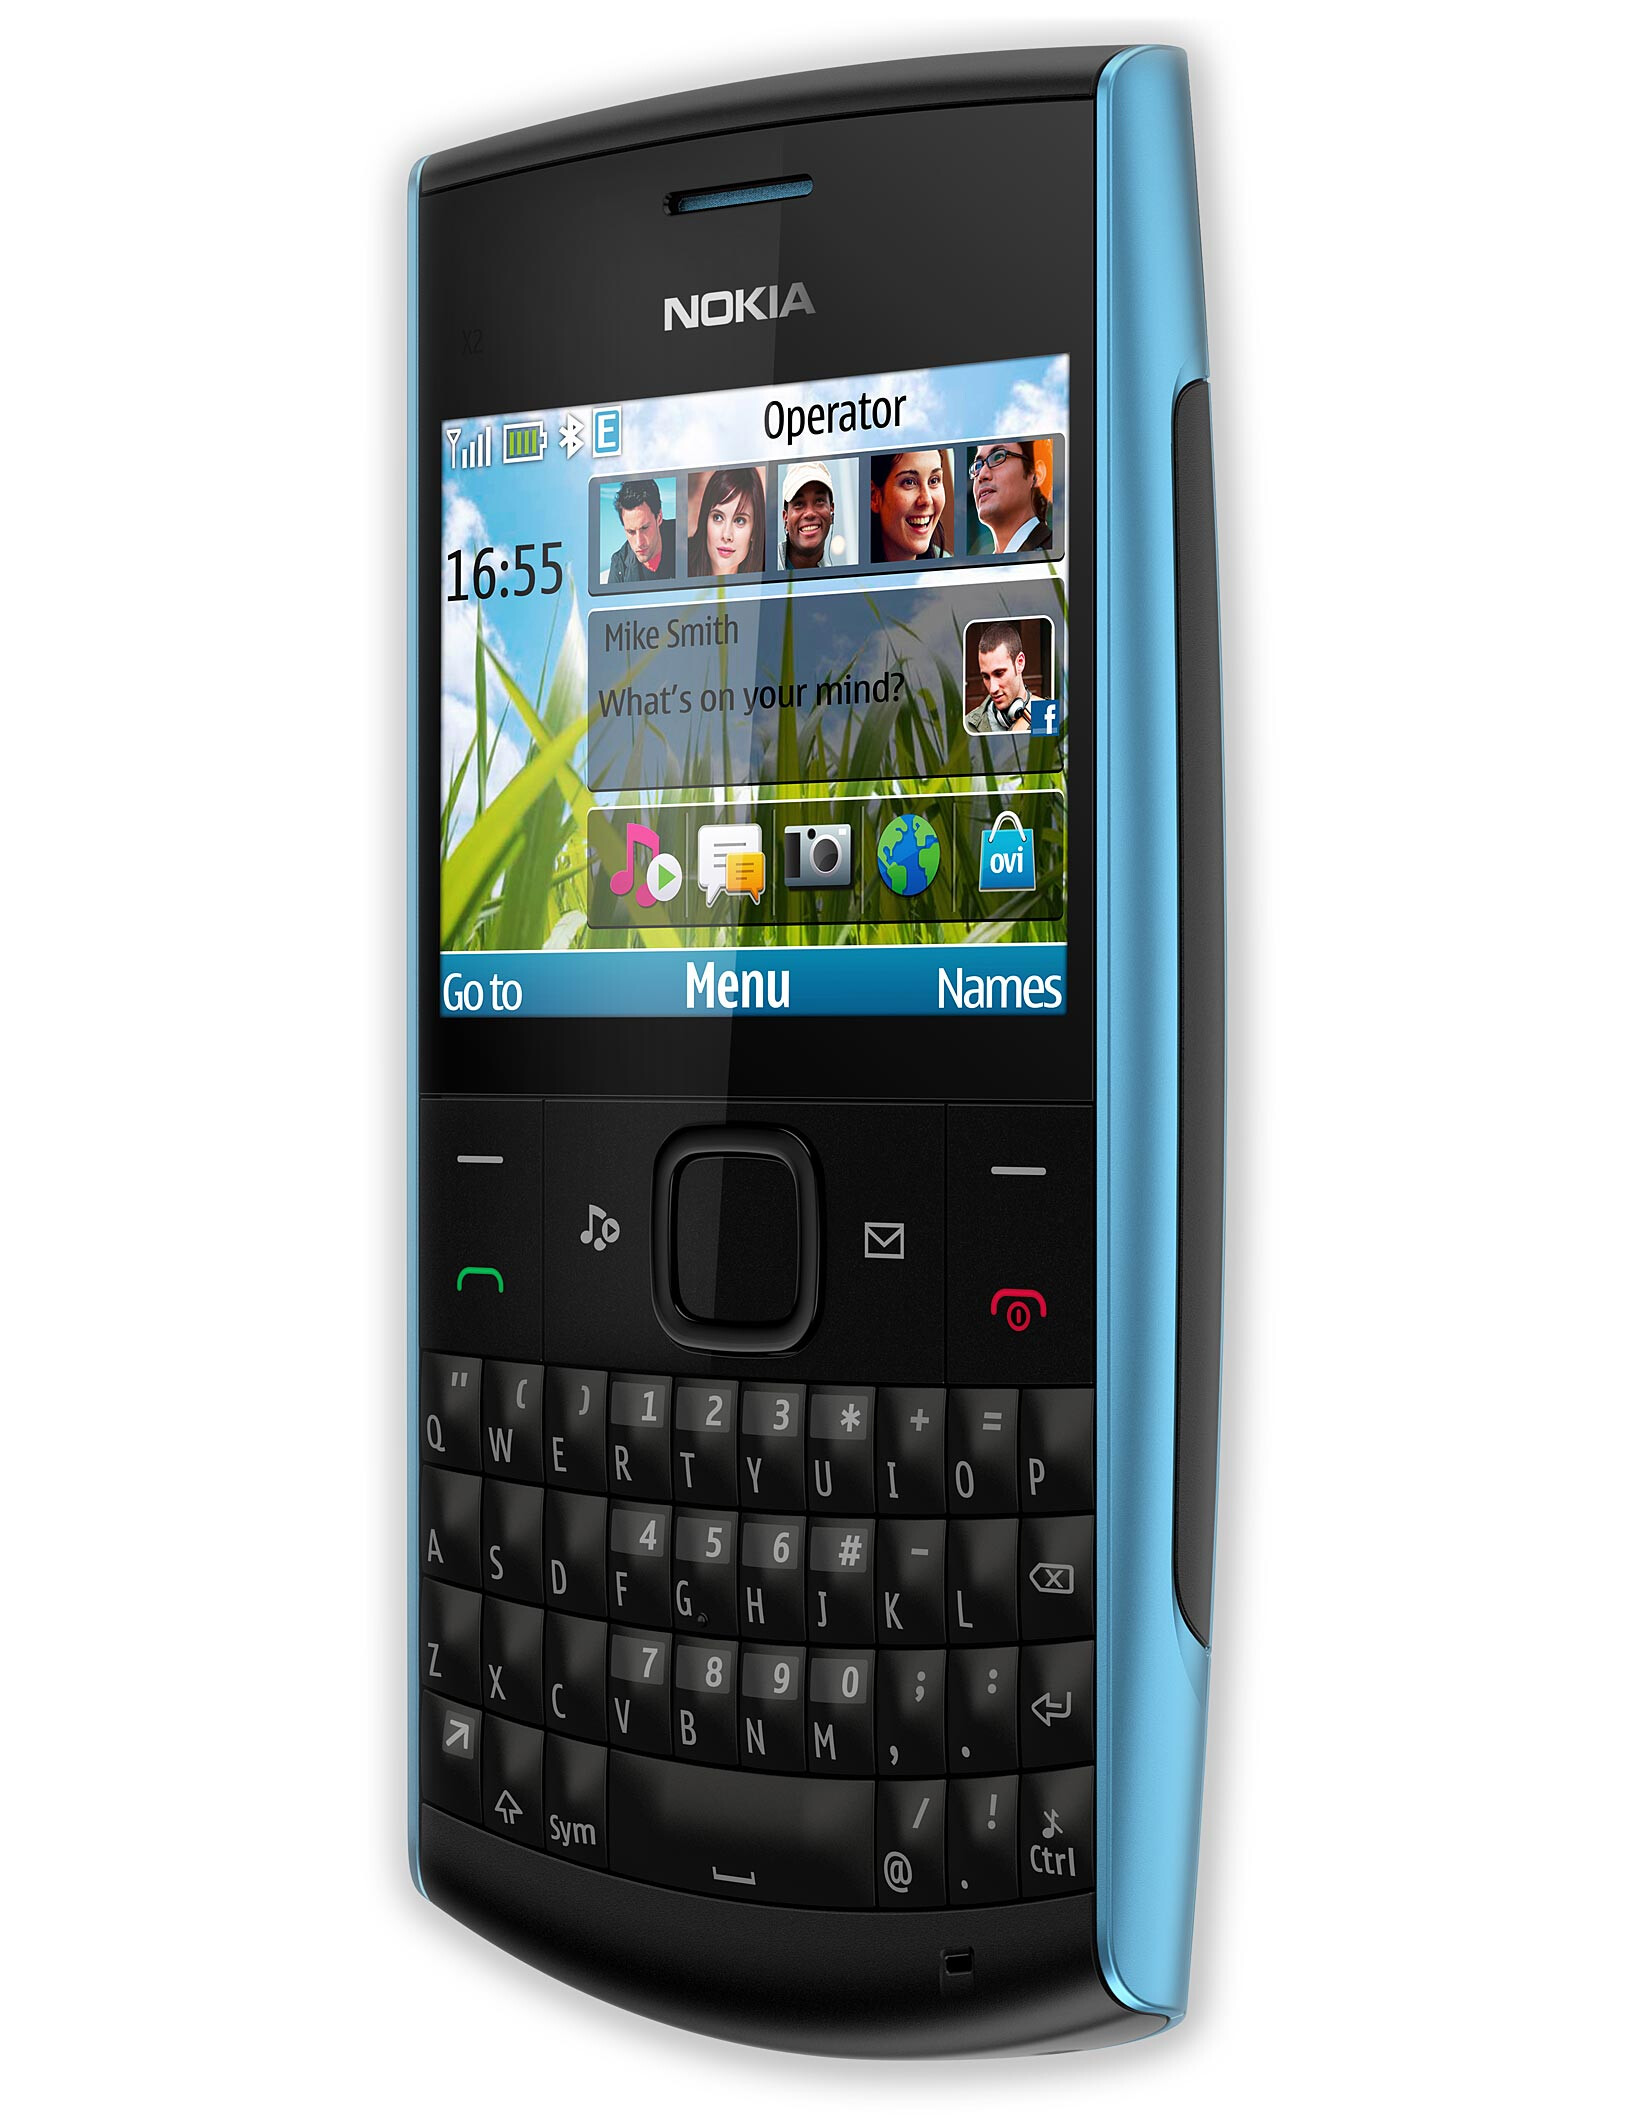 Nokia X2-01 and C2-01 are the newest low-end Series 40